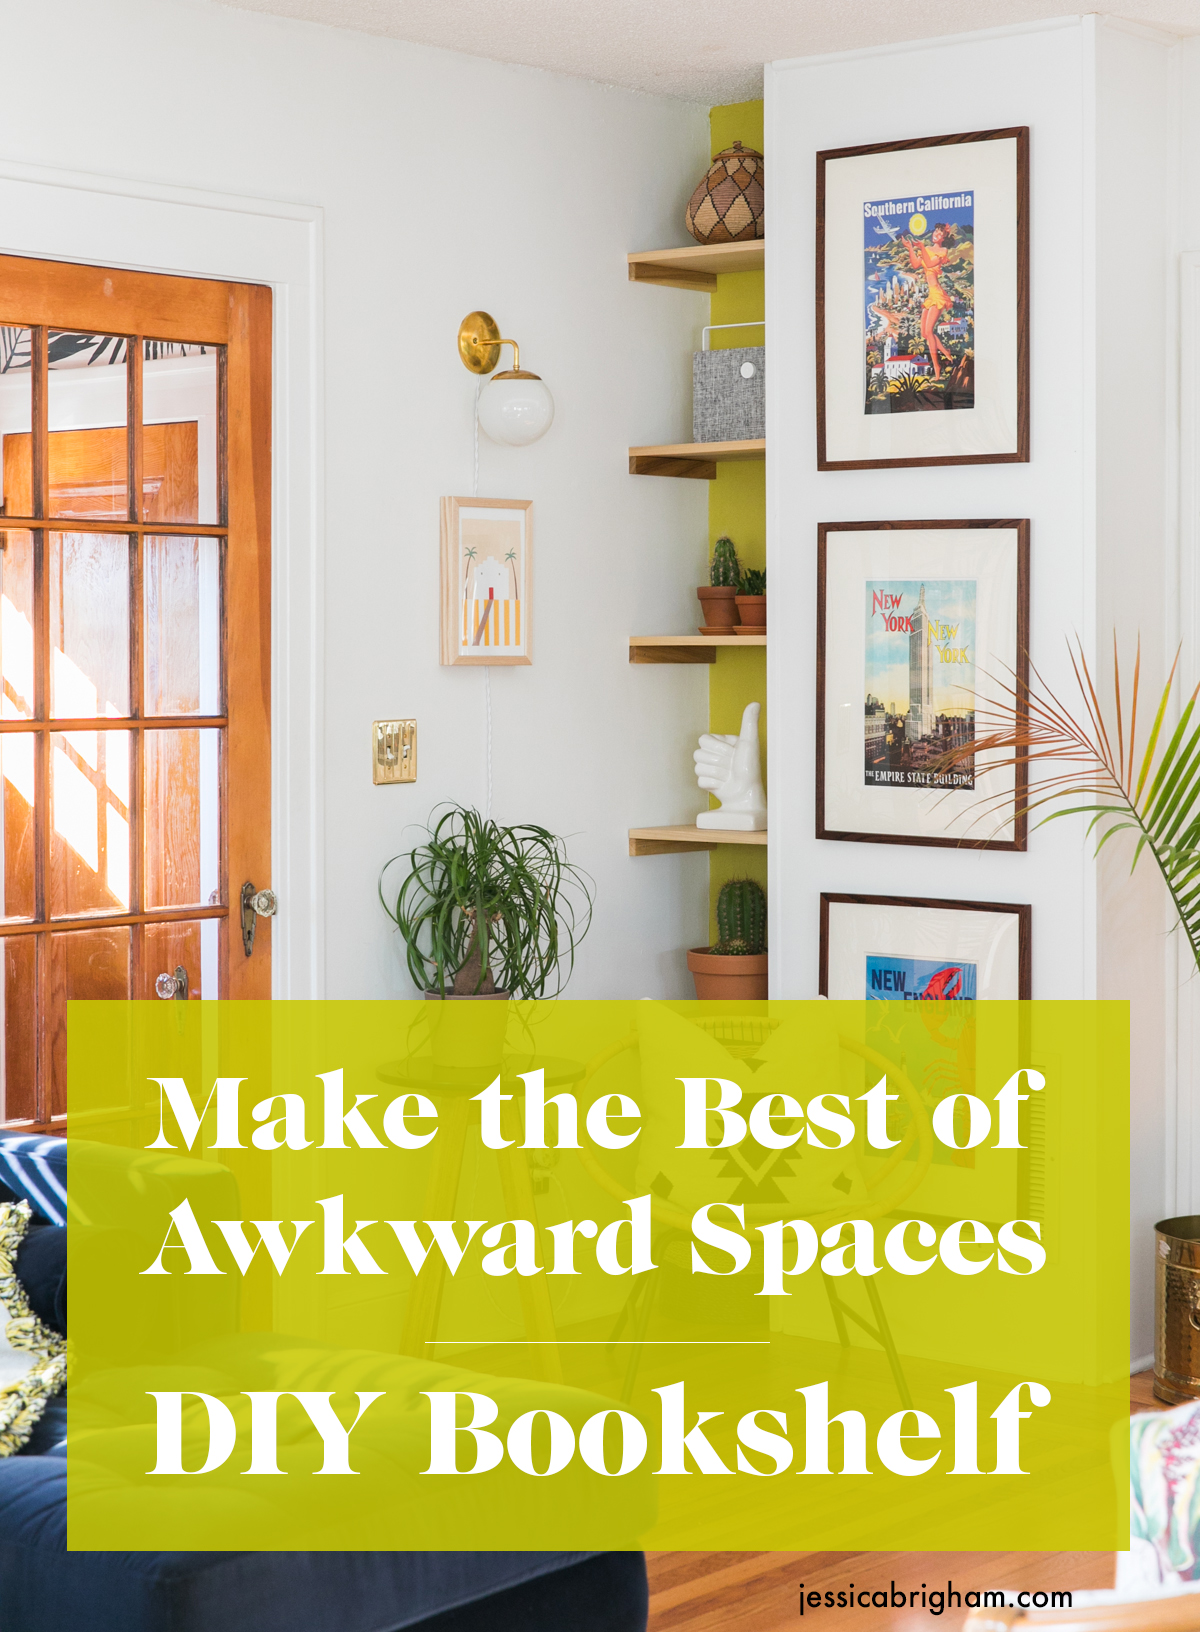 Make the Best of Awkward Spaces with this DIY Bookshelf | How to Build a Bookcase | Jessica Brigham | Magazine Ready for Life